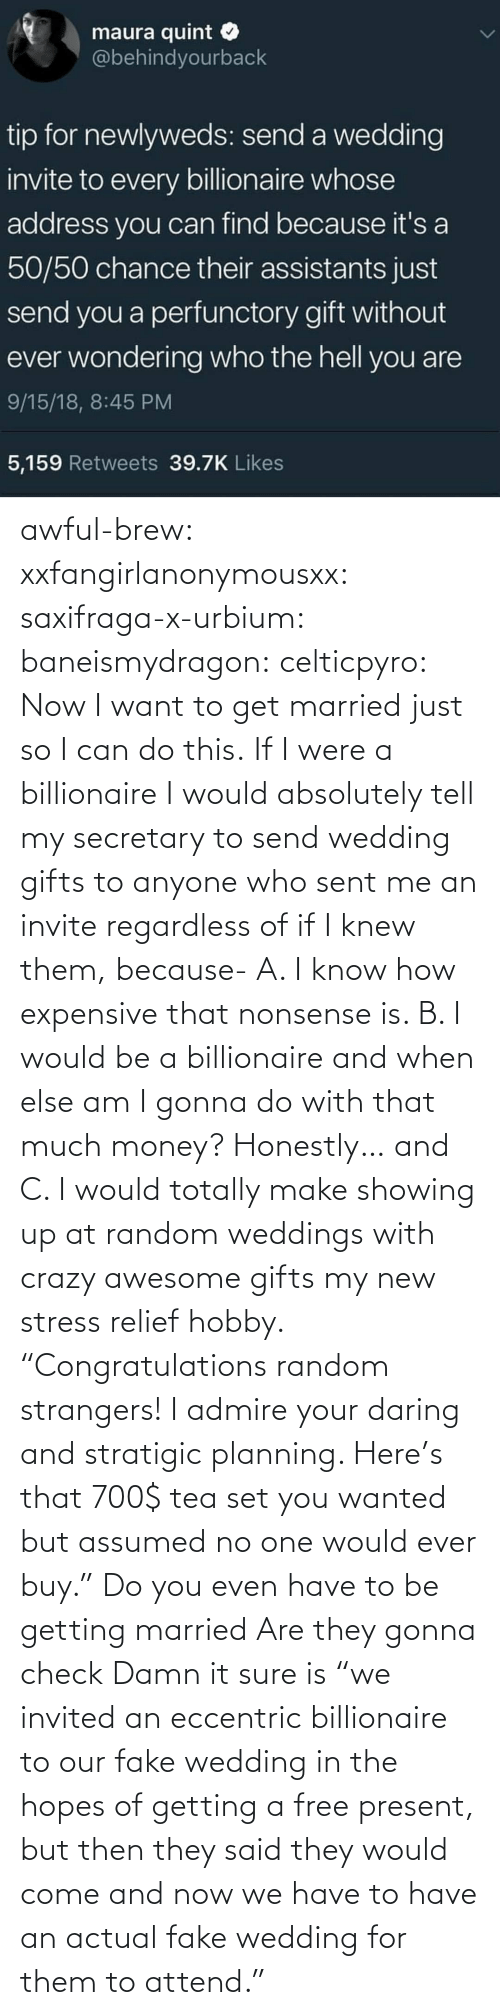 "We Have: awful-brew:  xxfangirlanonymousxx:  saxifraga-x-urbium:  baneismydragon:  celticpyro: Now I want to get married just so I can do this.  If I were a billionaire I would absolutely tell my secretary to send wedding gifts to anyone who sent me an invite regardless of if I knew them, because- A. I know how expensive that nonsense is. B. I would be a billionaire and when else am I gonna do with that much money? Honestly… and C. I would totally make showing up at random weddings with crazy awesome gifts my new stress relief hobby. ""Congratulations random strangers! I admire your daring and stratigic planning. Here's that 700$ tea set you wanted but assumed no one would ever buy.""   Do you even have to be getting married Are they gonna check   Damn it sure is  ""we invited an eccentric billionaire to our fake wedding in the hopes of getting a free present, but then they said they would come and now we have to have an actual fake wedding for them to attend."""